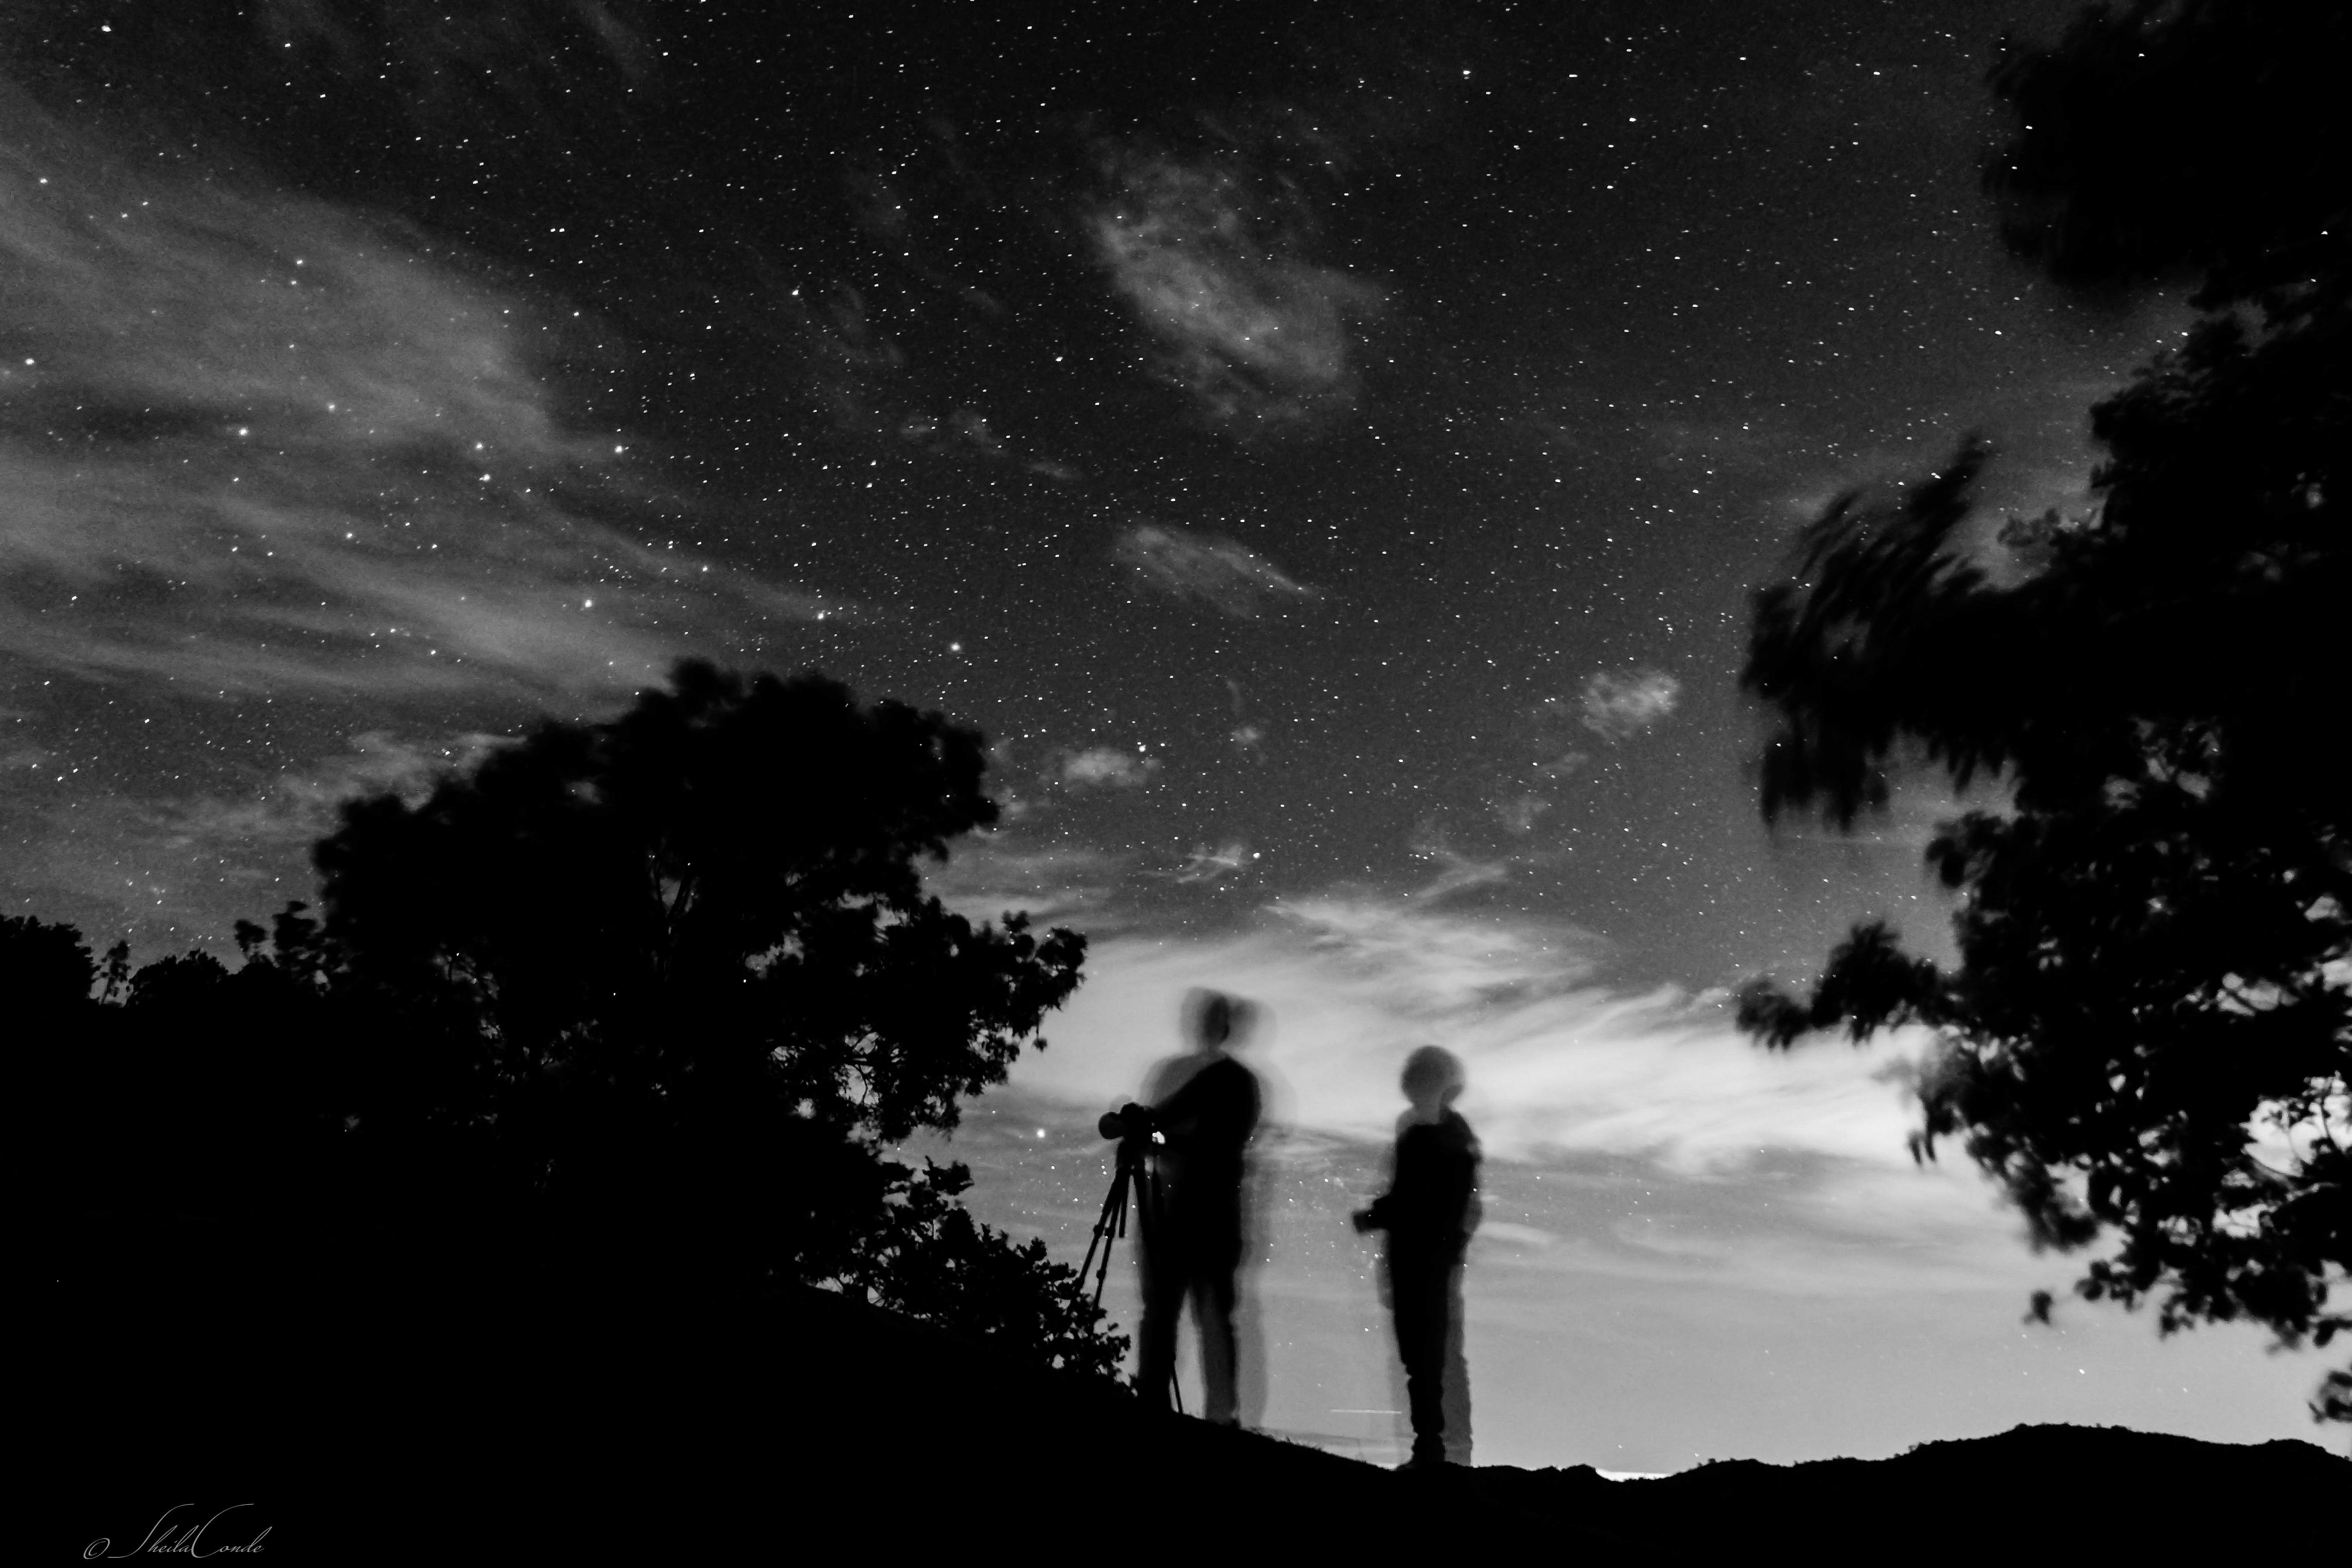 Free stock photo of astronomy, astrophotography, black and white, father